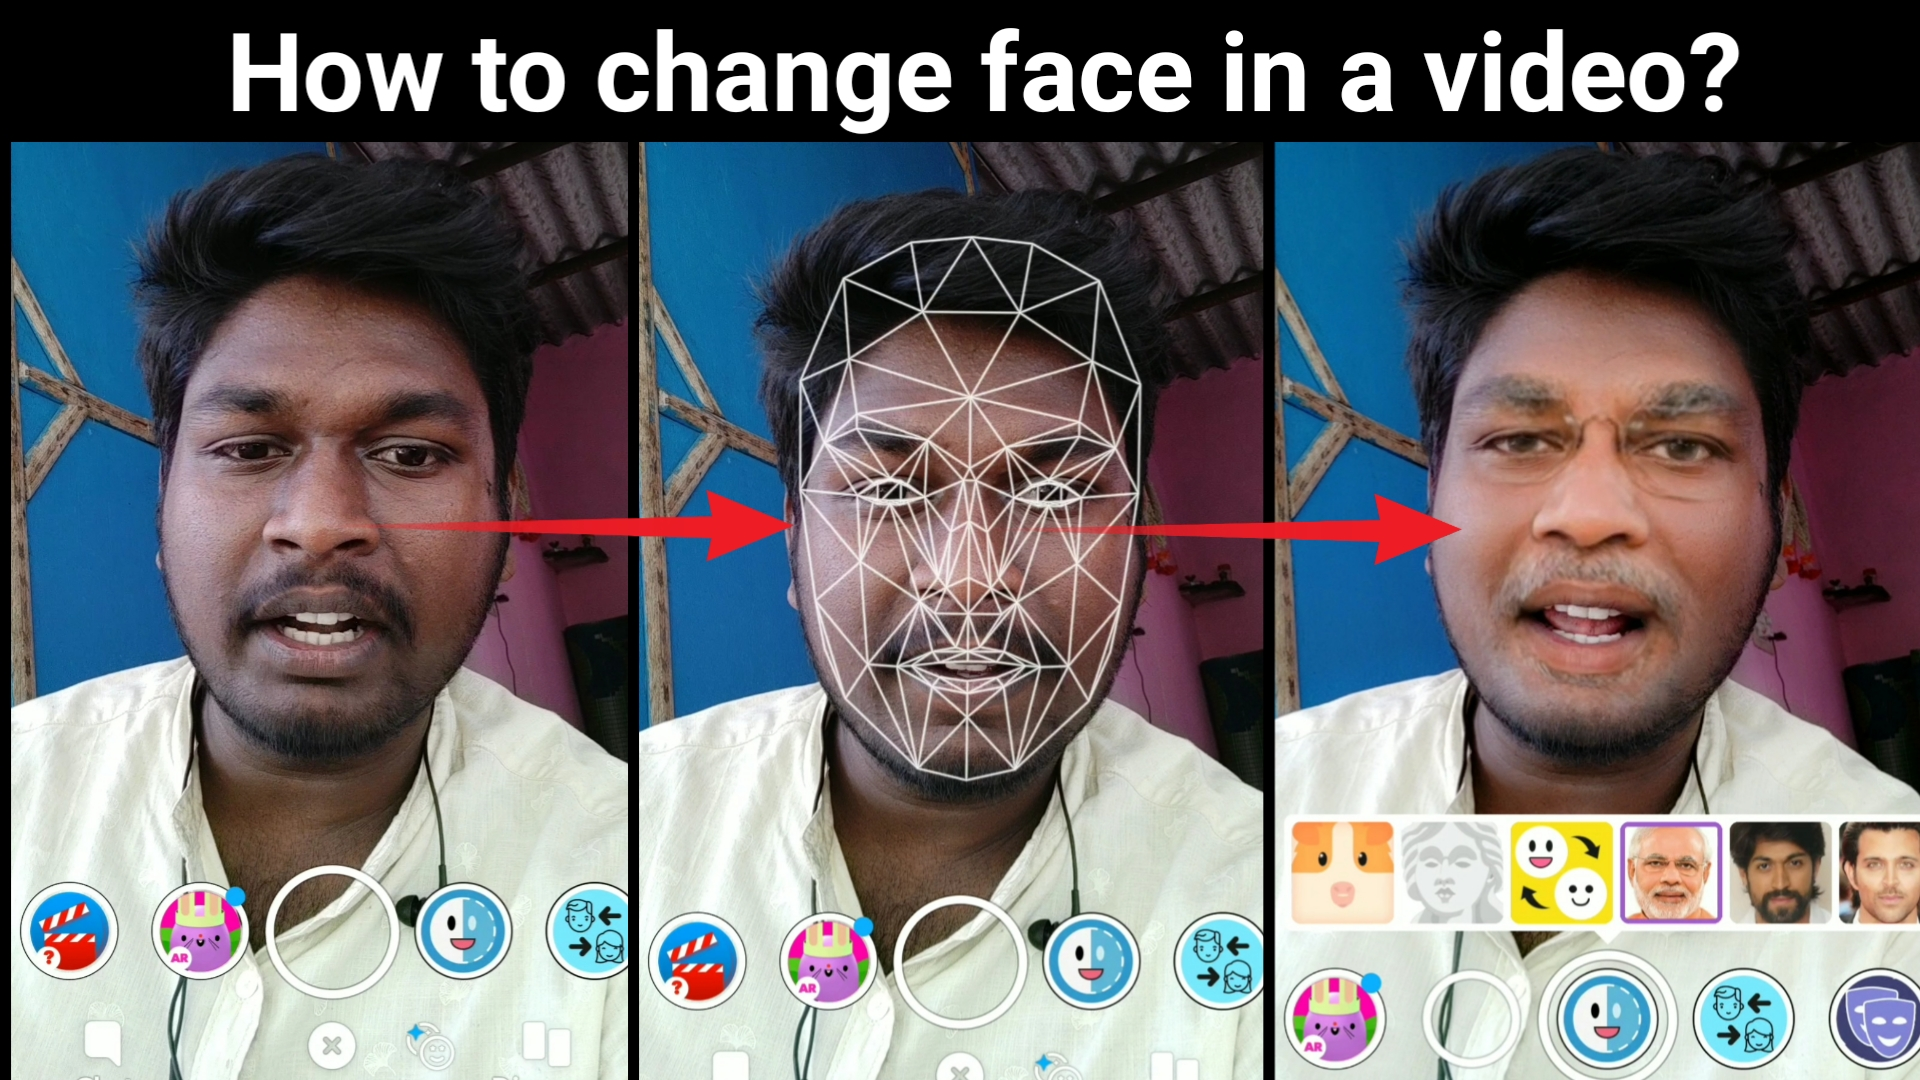 How to change face in a video by using android phone? Tutorial News 3d face 3d face, after effects face replacement, android, Android Face changing, android phone, Camera, change, changing, effects, Face, face change, Face recognize, face replacement, face replacement tutorial, face replacement vfx, Face swap, Faces, how to, How to change face in a video, How to replace face in video, in android, Manjunath Acharya, mask, mix, Photoshop, plastic sugery, portrait, replace, Smartphone, swap face, Tamil, tech, tutorial, Vfx  Kannada Tech